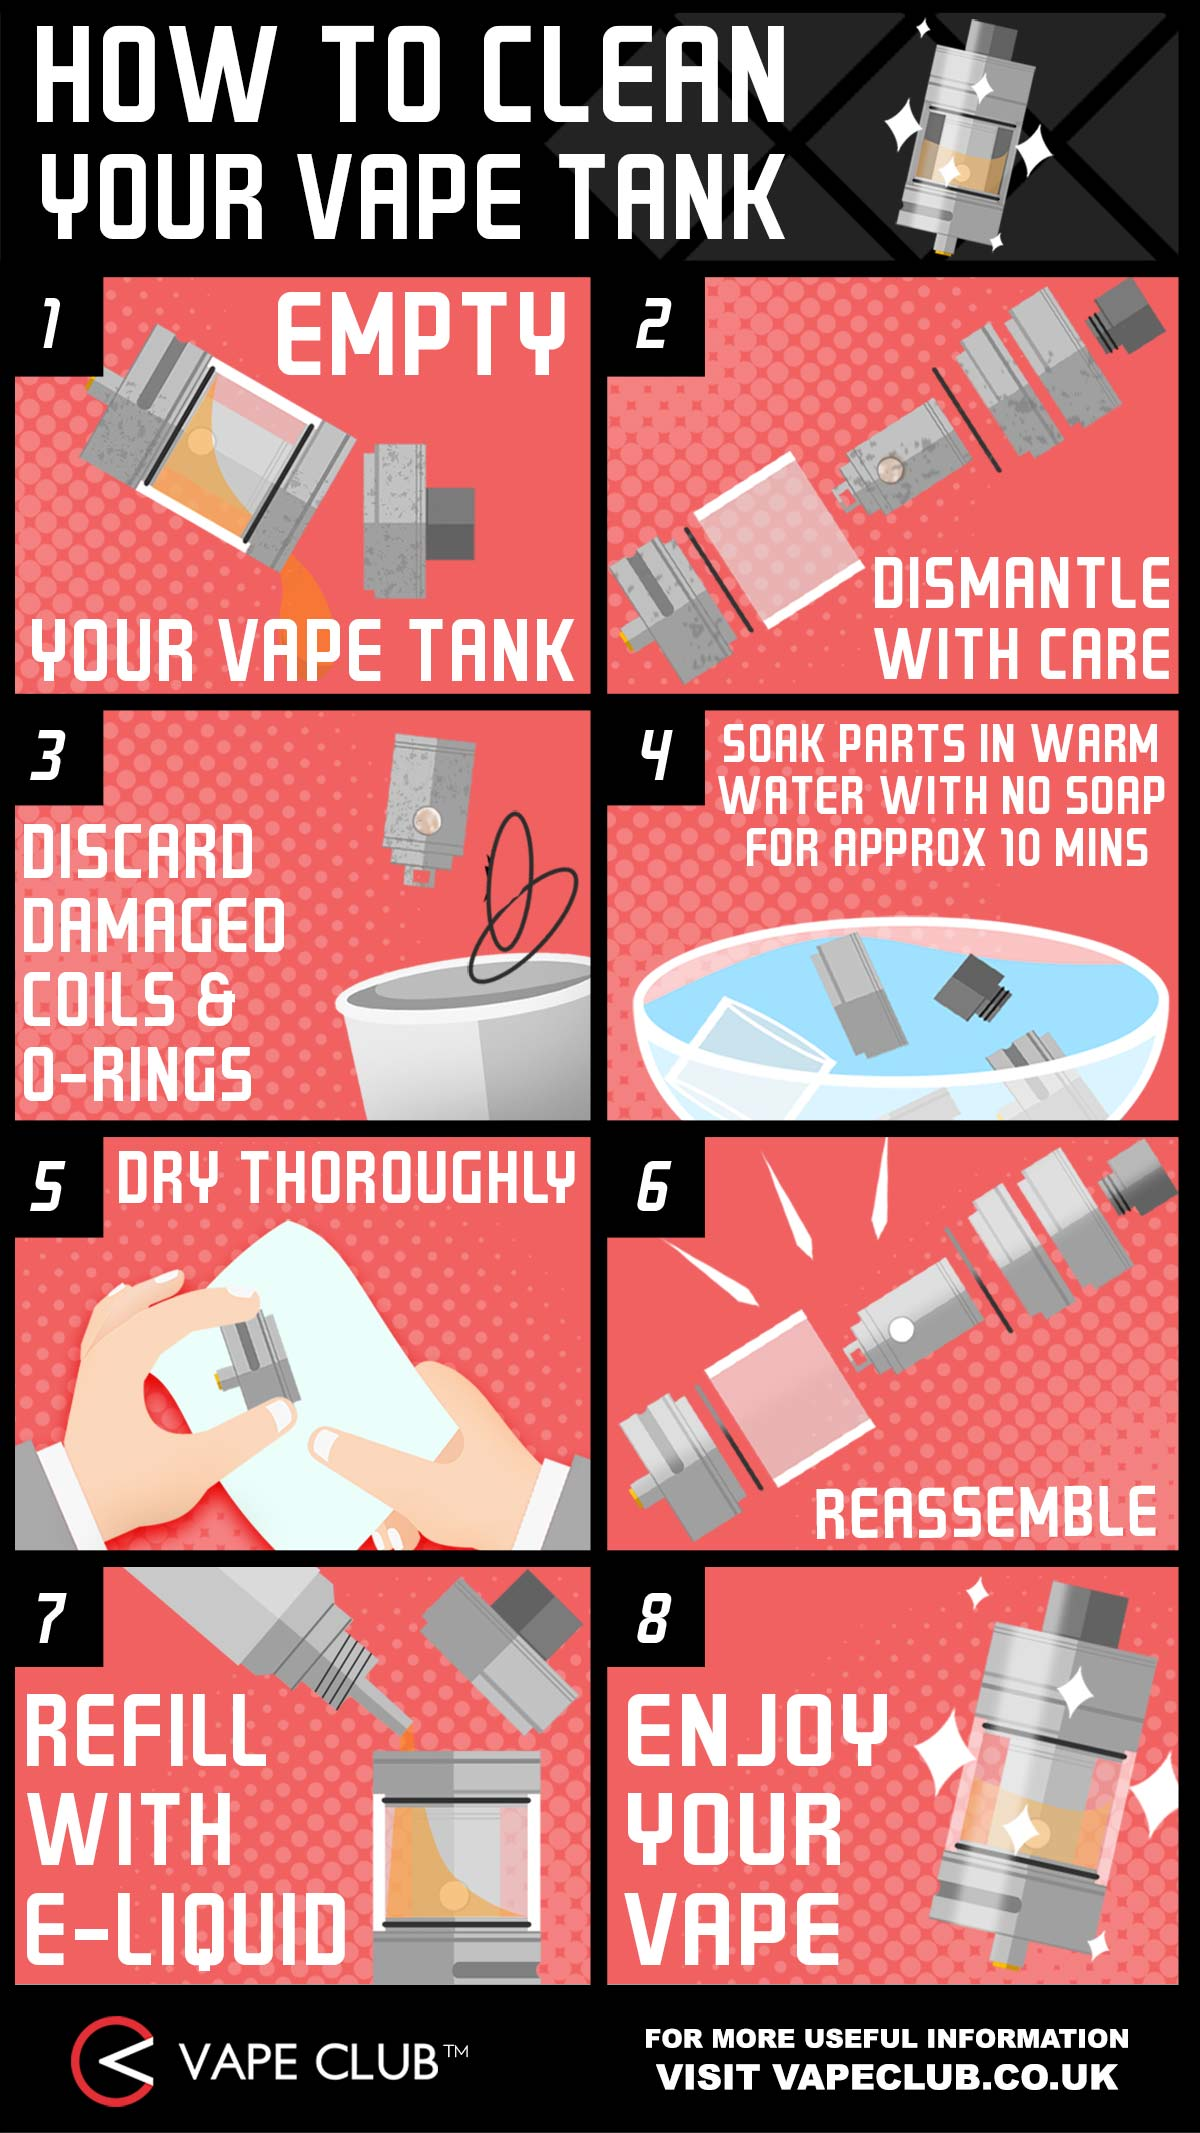 How to clean your vape tank